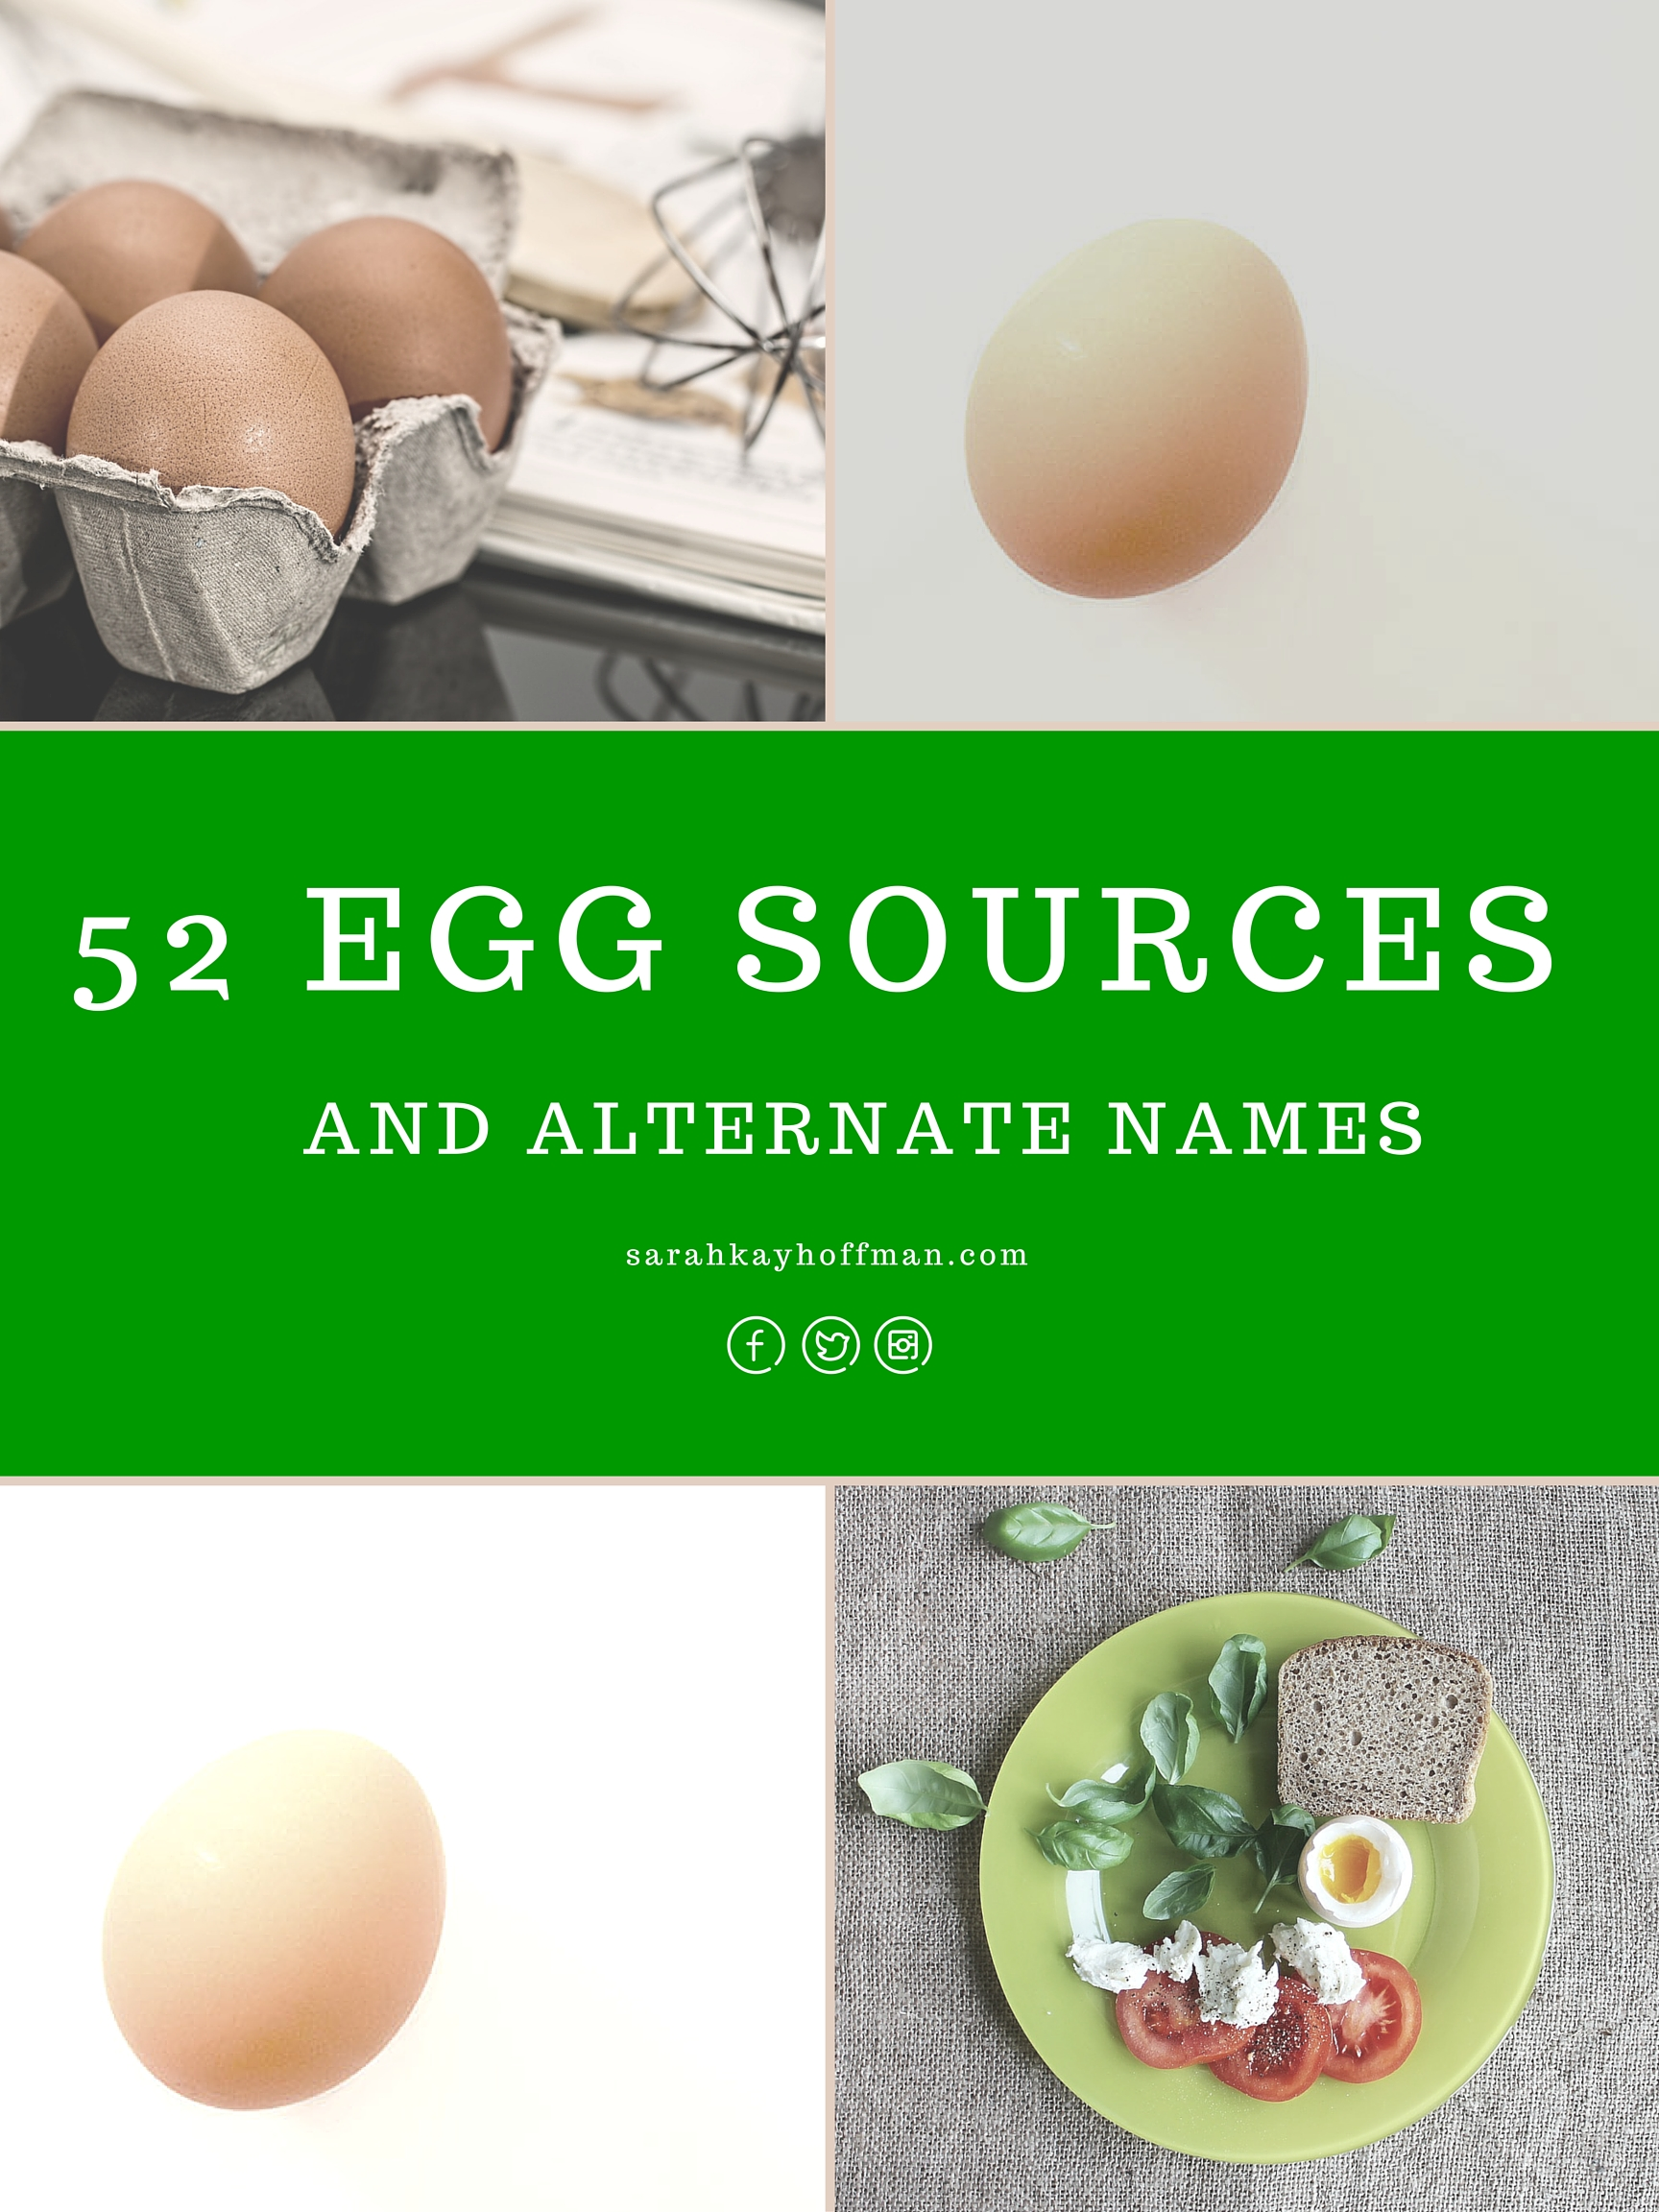 52 Egg Sources and alternate names Egg Allergy and Egg Intolerance sarahkayhoffman.com #guthealth #eggs #healthyliving